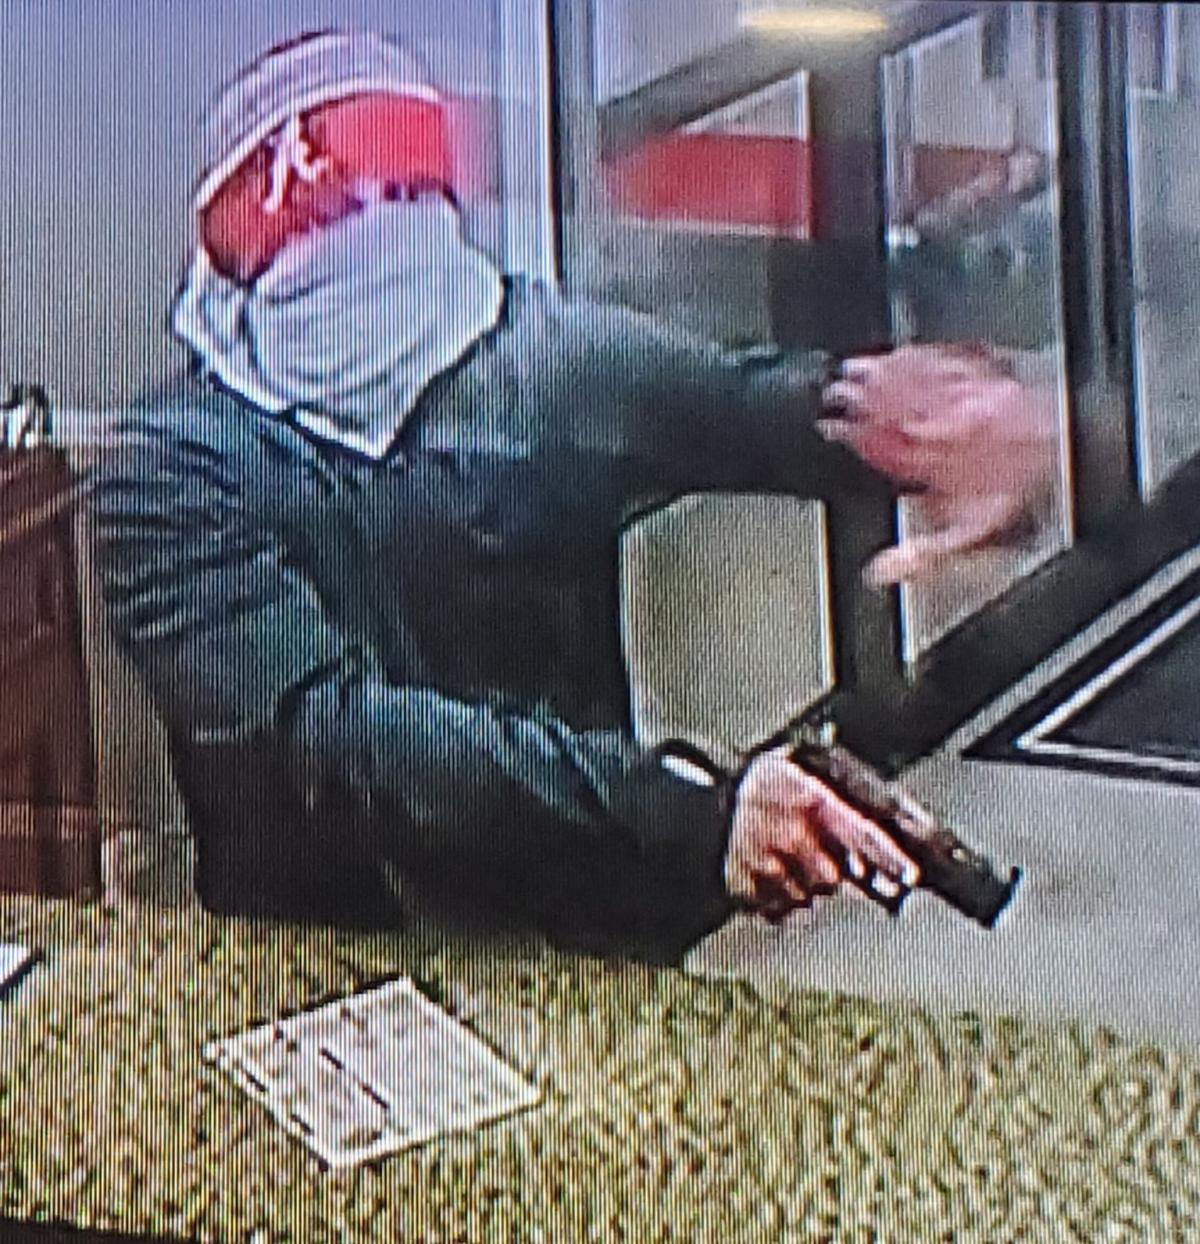 Country Inn and Suites robber2